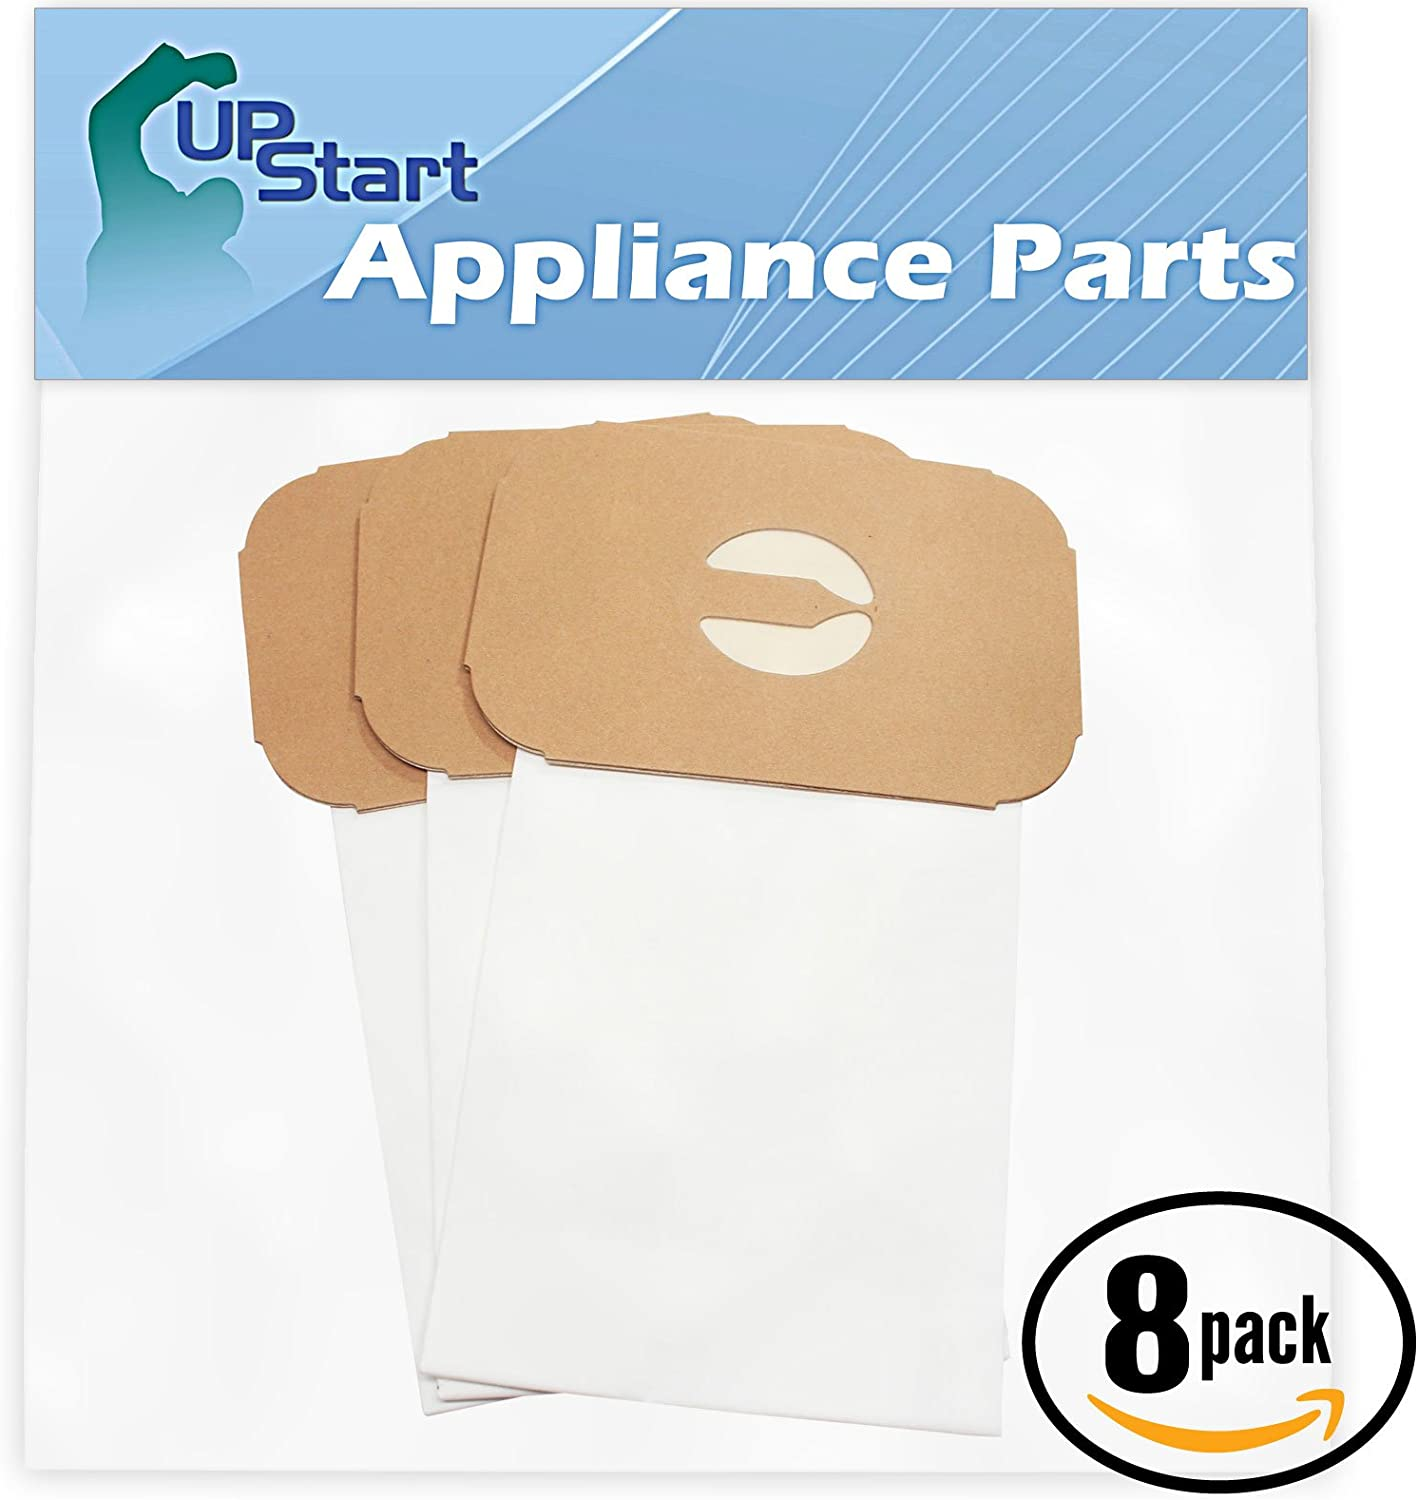 Upstart Battery 24 Replacement for Aerus/Electrolux Lux 5000 Style C Vacuum Bags - Compatible with Aerus/Electrolux Canister Tank Type C Vacuum Bags (8-Pack - 3 Vacuum Bags per Pack)